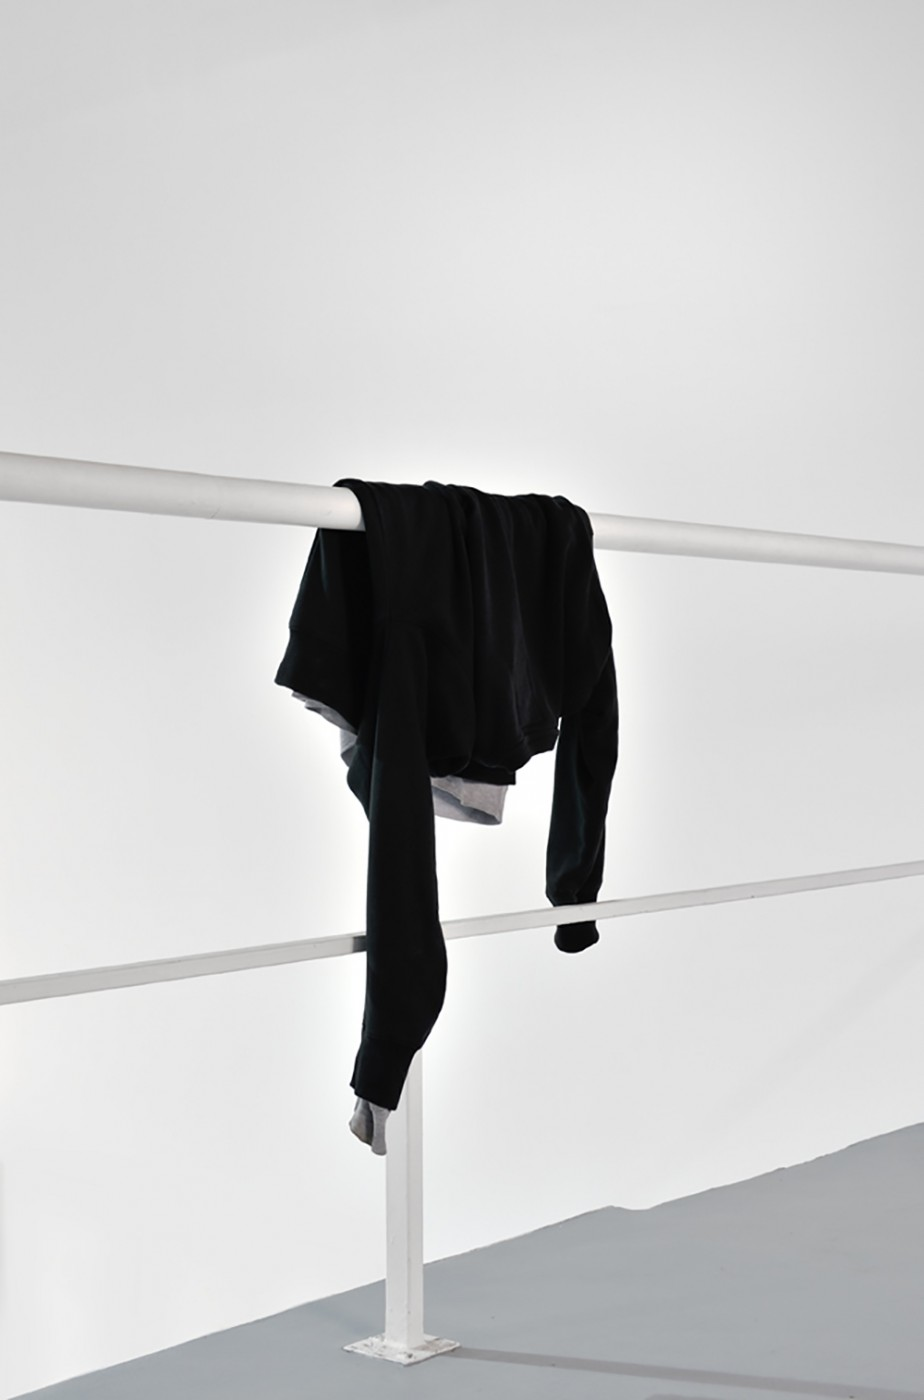 Untitled, 2013, Edition de 3, Sweatshirts, Installation variable 